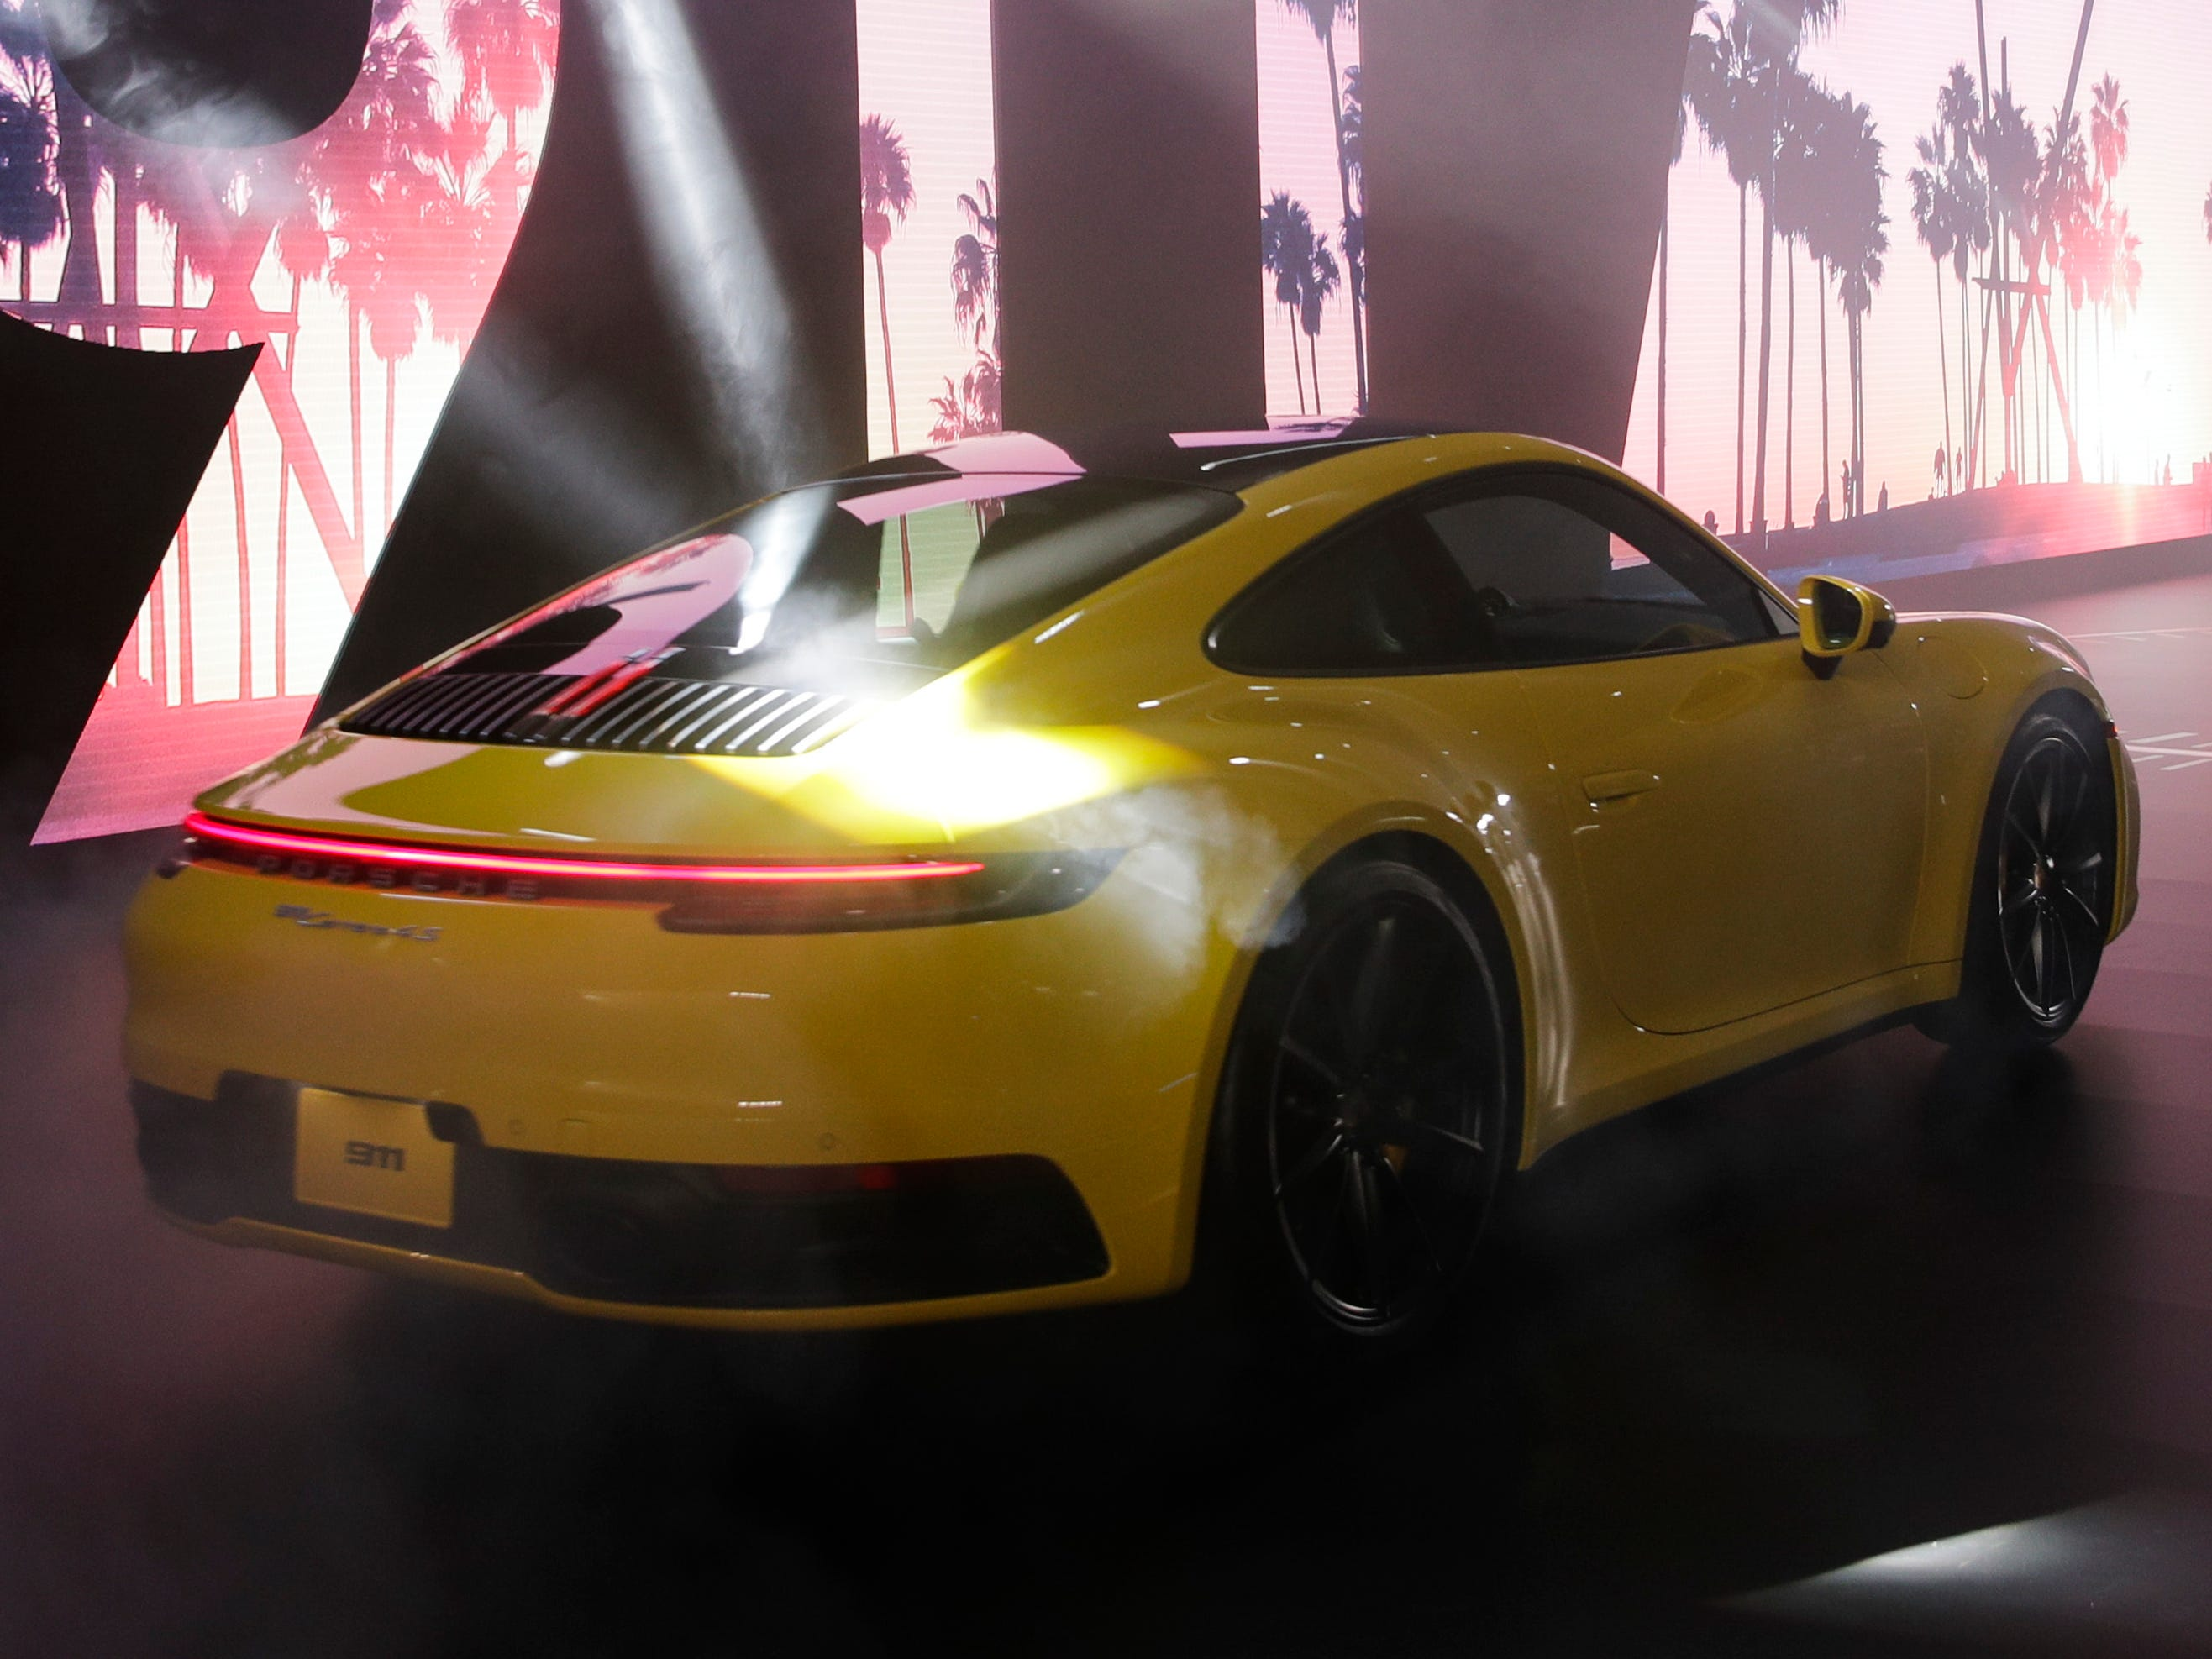 The 2020 Porsche 911 is unveiled at the Porsche Experience Center in Los Angeles ahead of the LA Auto Show. It packs 23 more horsepower and more tech over the last gen.